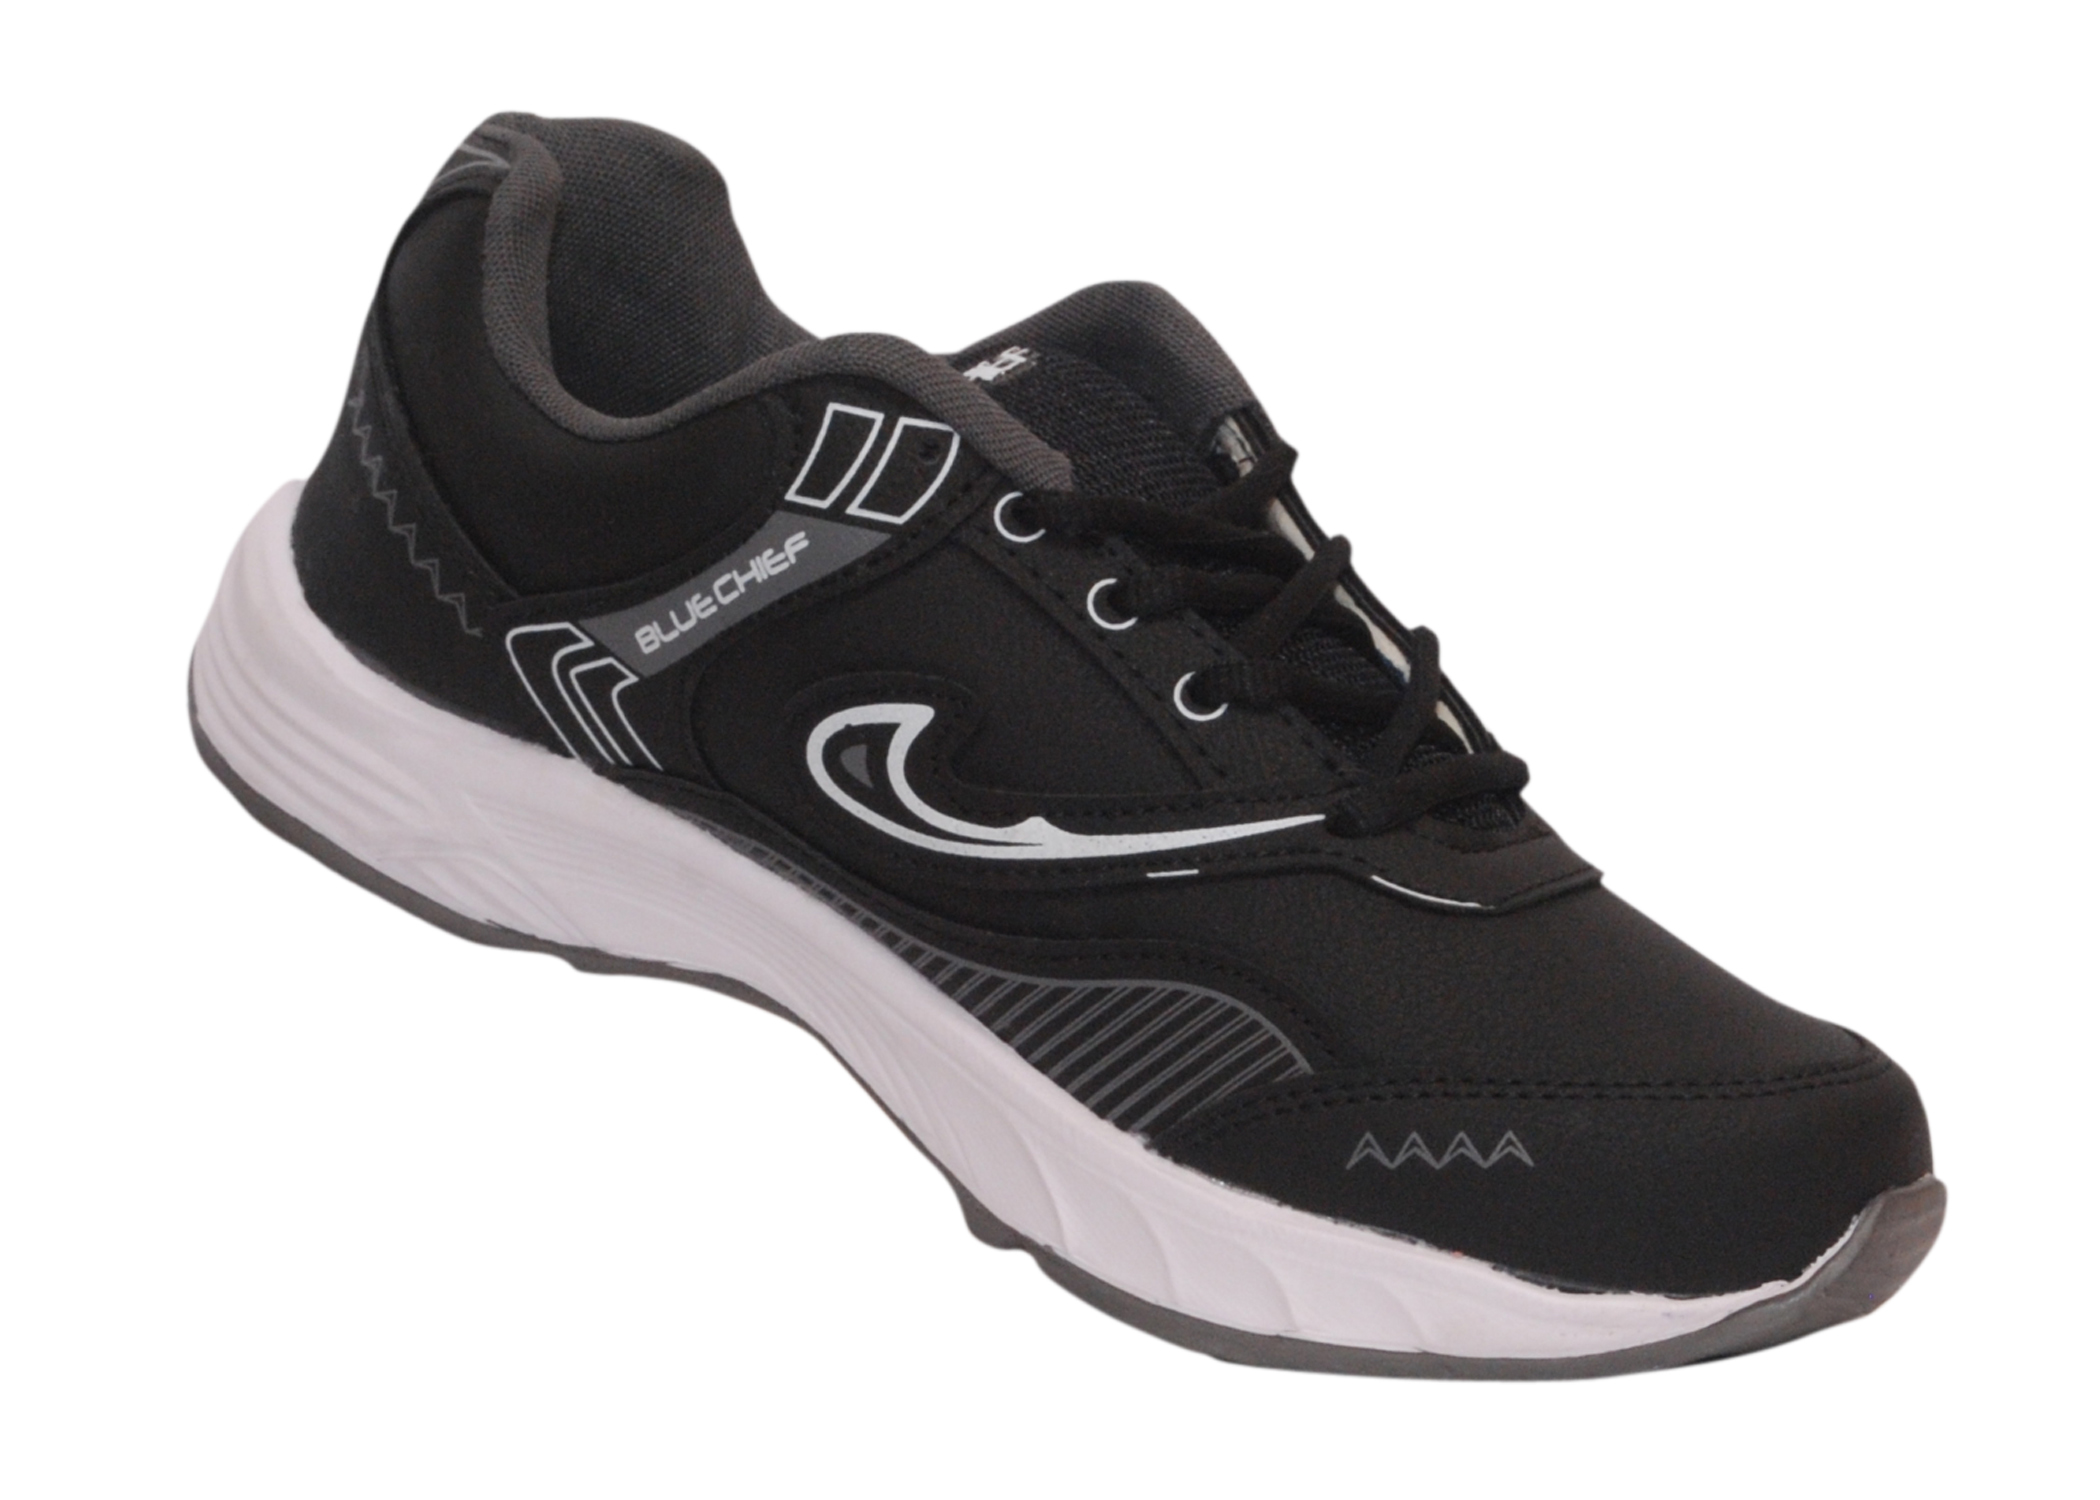 creativefashion8 The Blue Chief Running Shoes Bc5-whitenblack